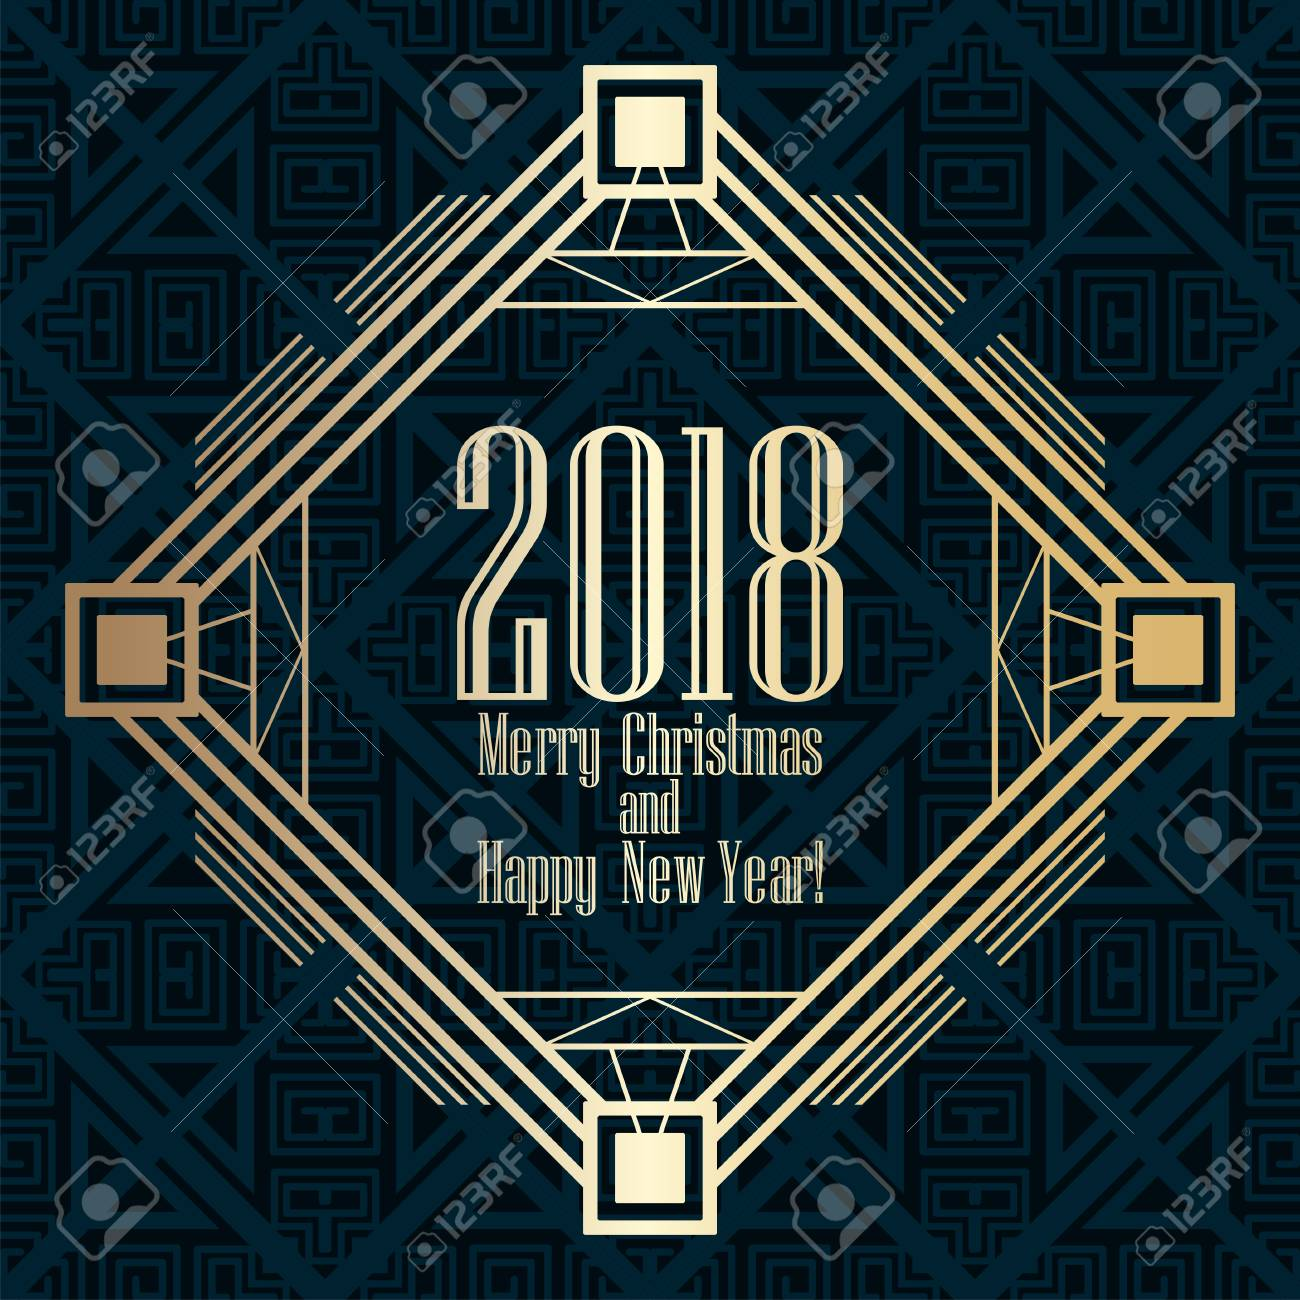 2018 new year greeting card in art deco golden style template for design vector